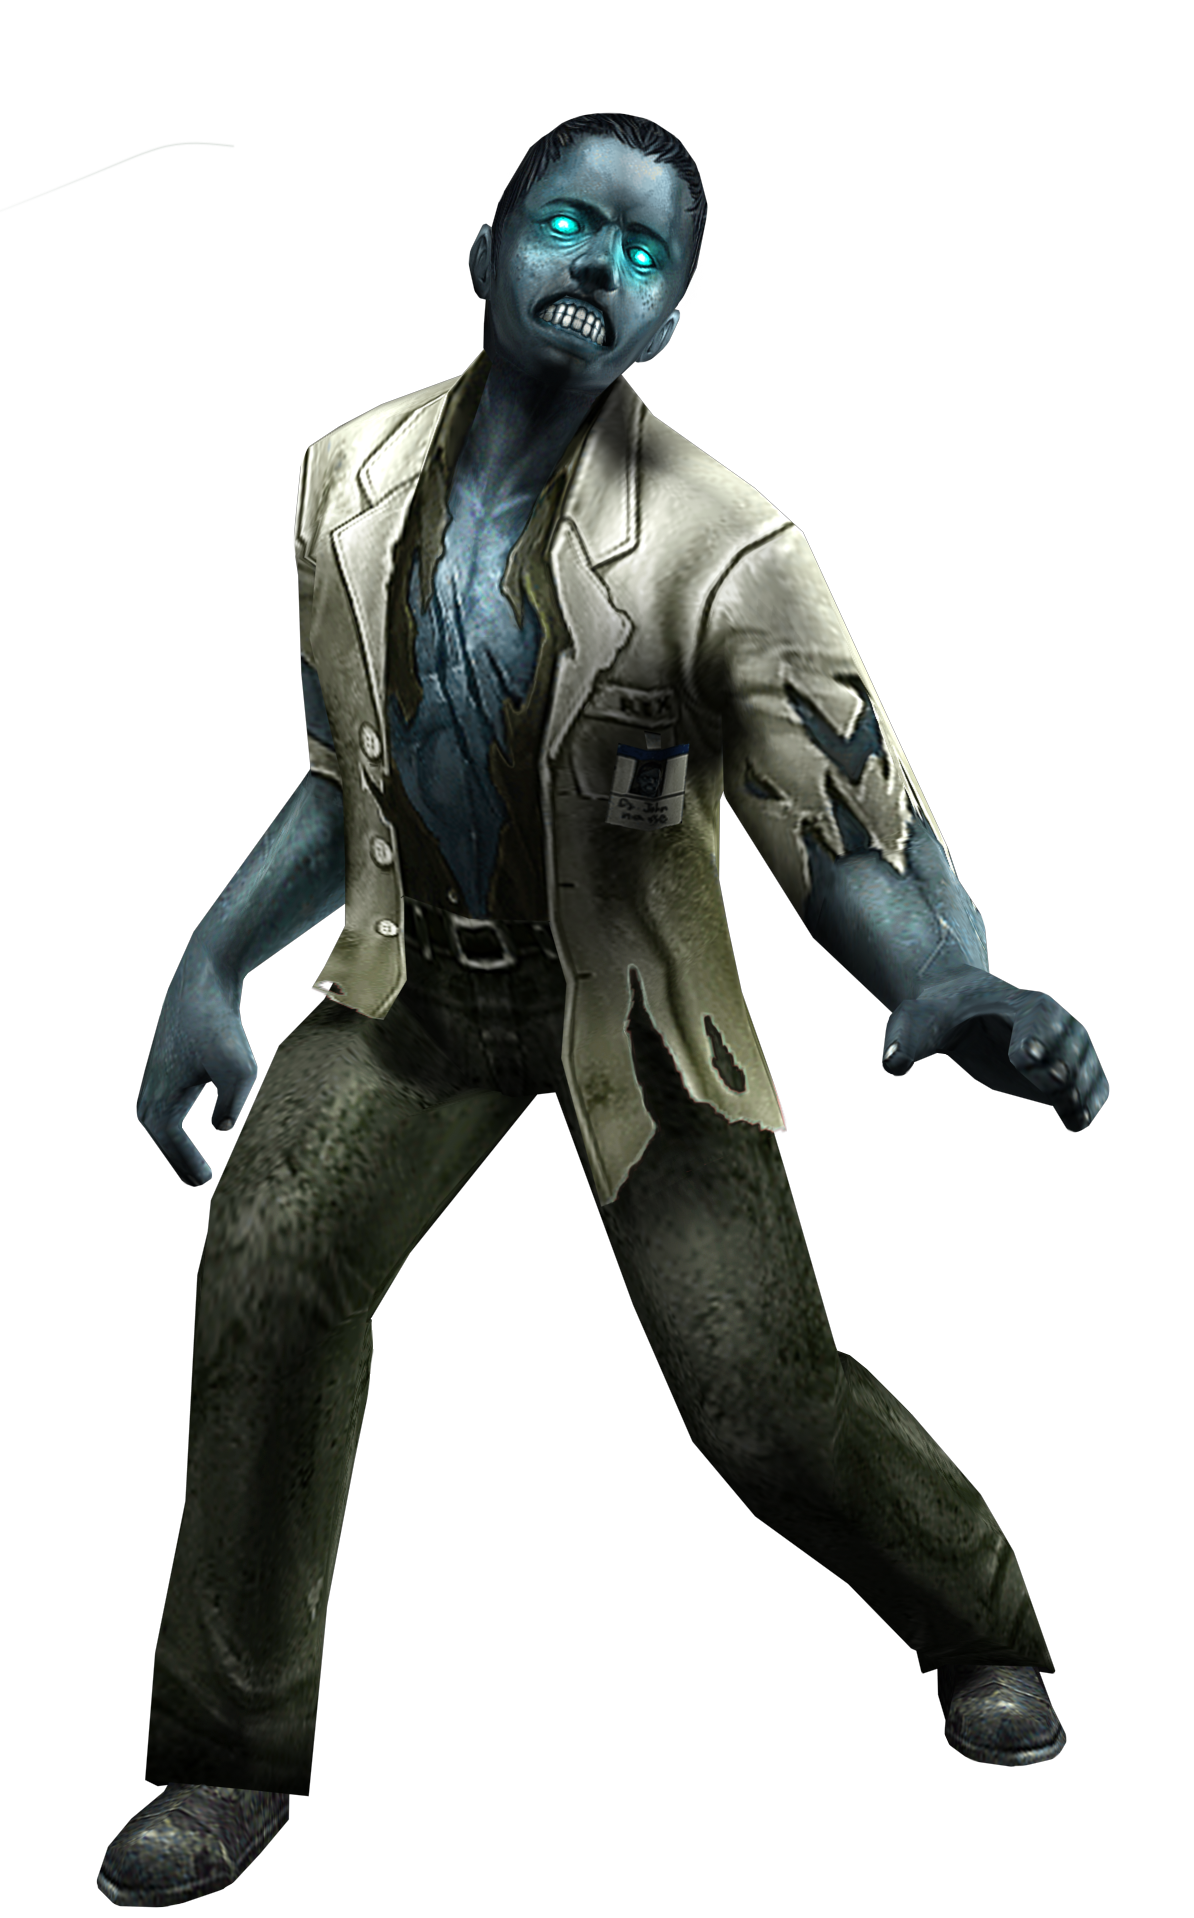 Clip Art Counter Strike Nexon Zombies PNG Image image #48815